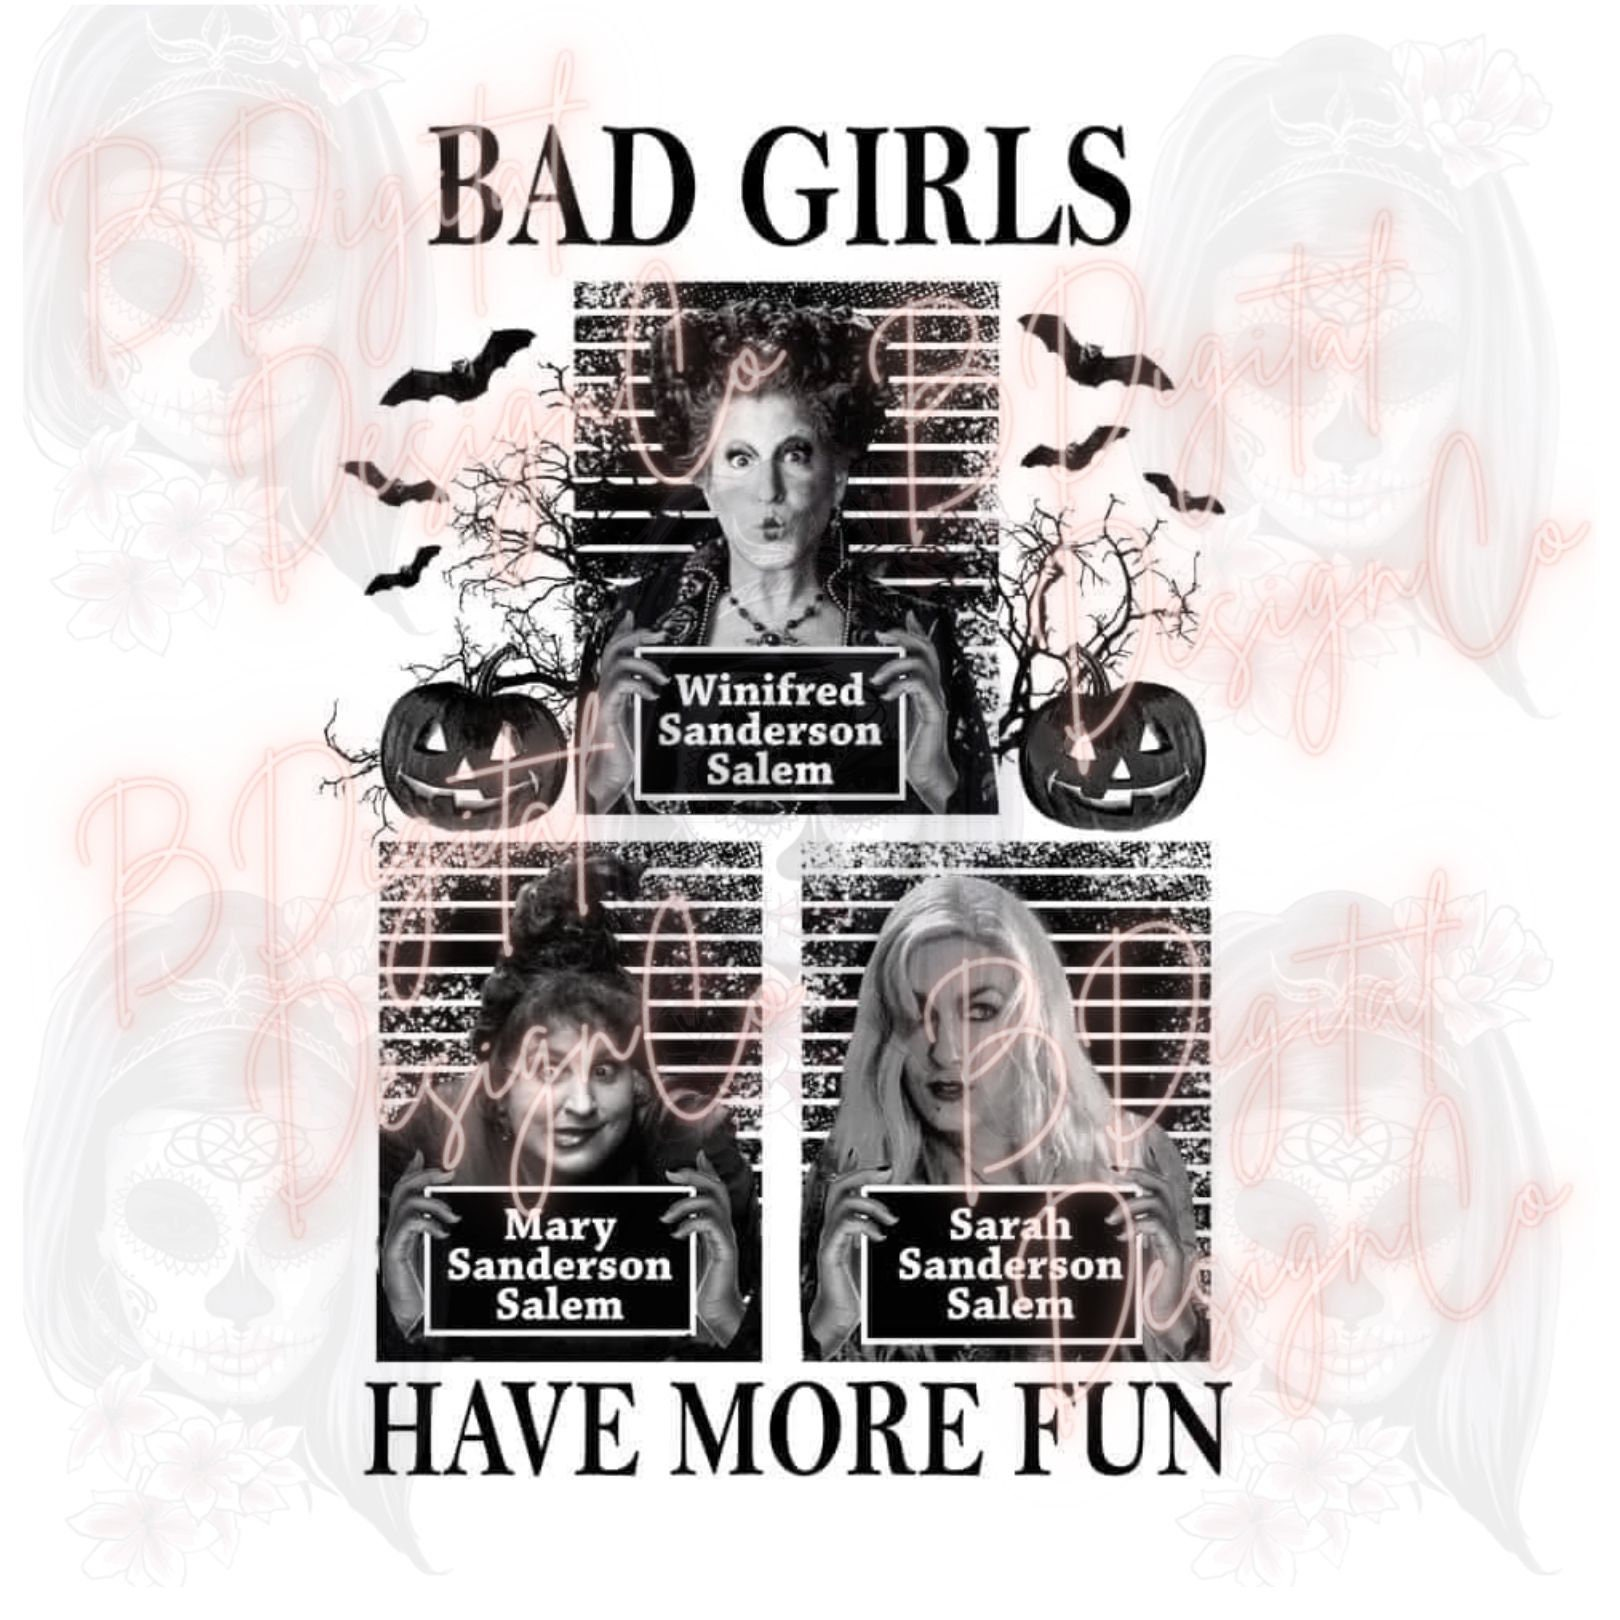 Bad Girls have more fun, Sanderson Sisters, I put a spell on you, Just a bunch of Hocus Pocus, Hocus Pocus, Halloween, PNG